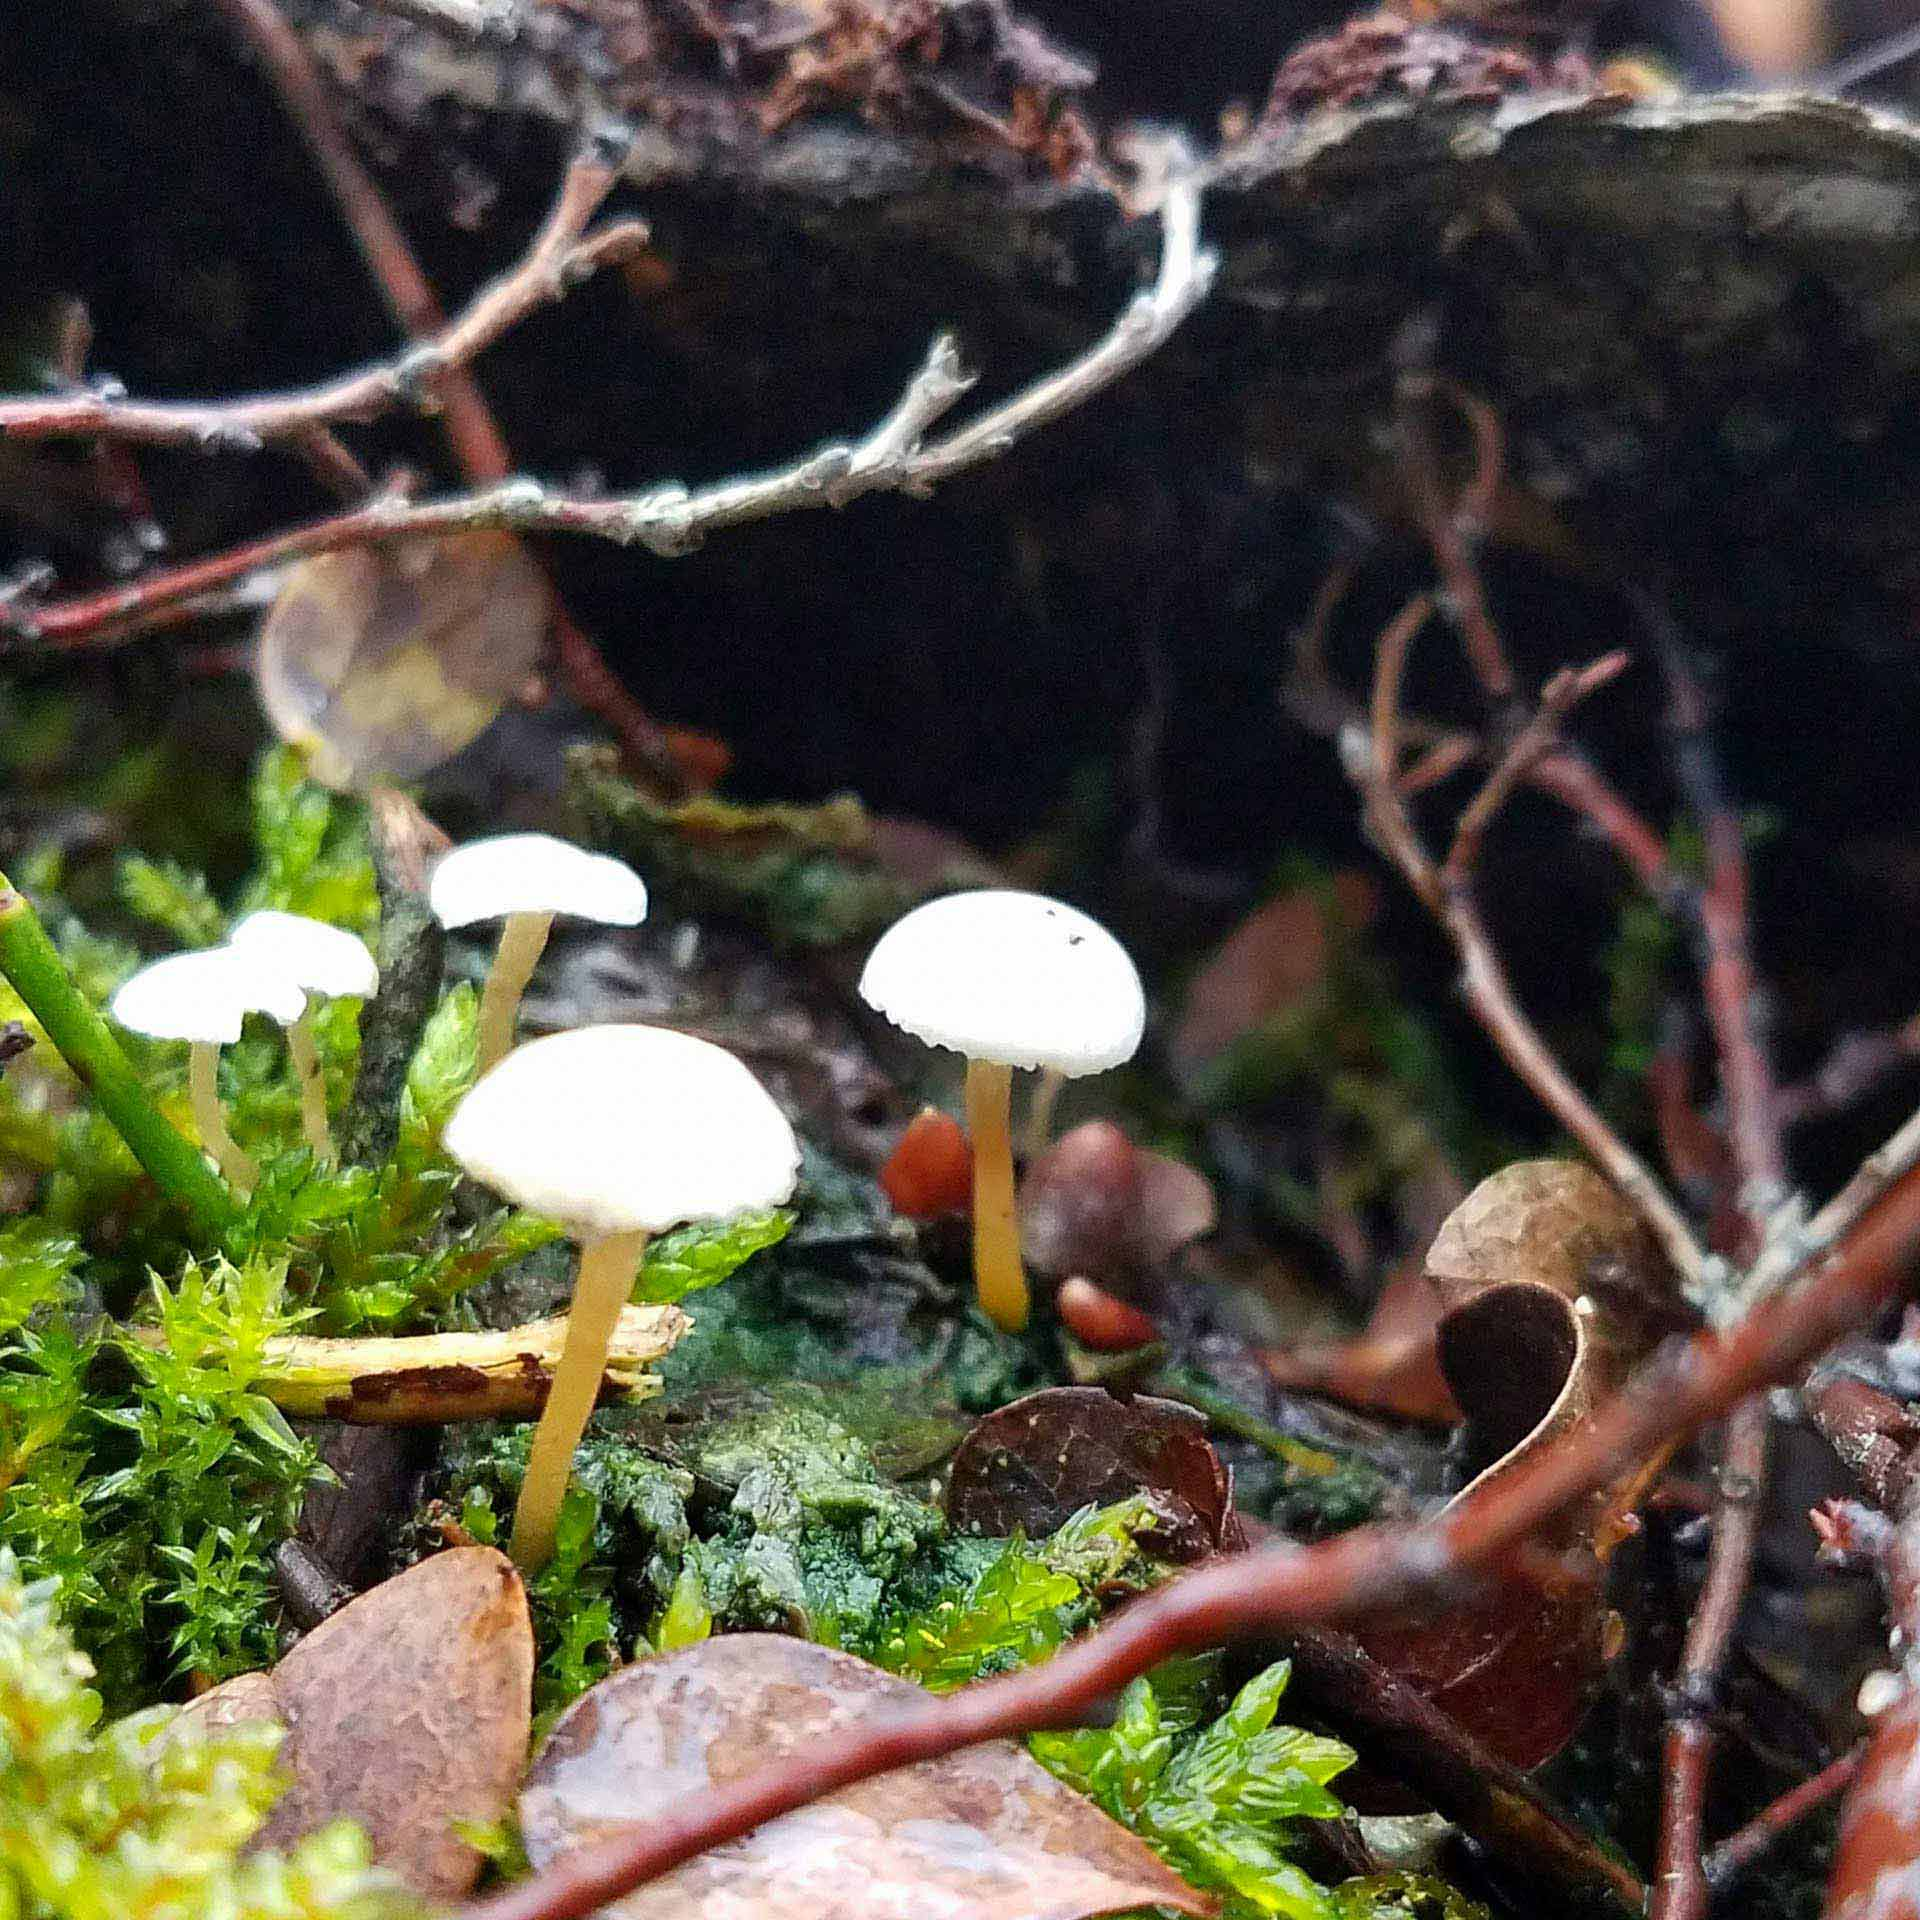 Group of white mushrooms growing along a nature walk in Scandinavia.